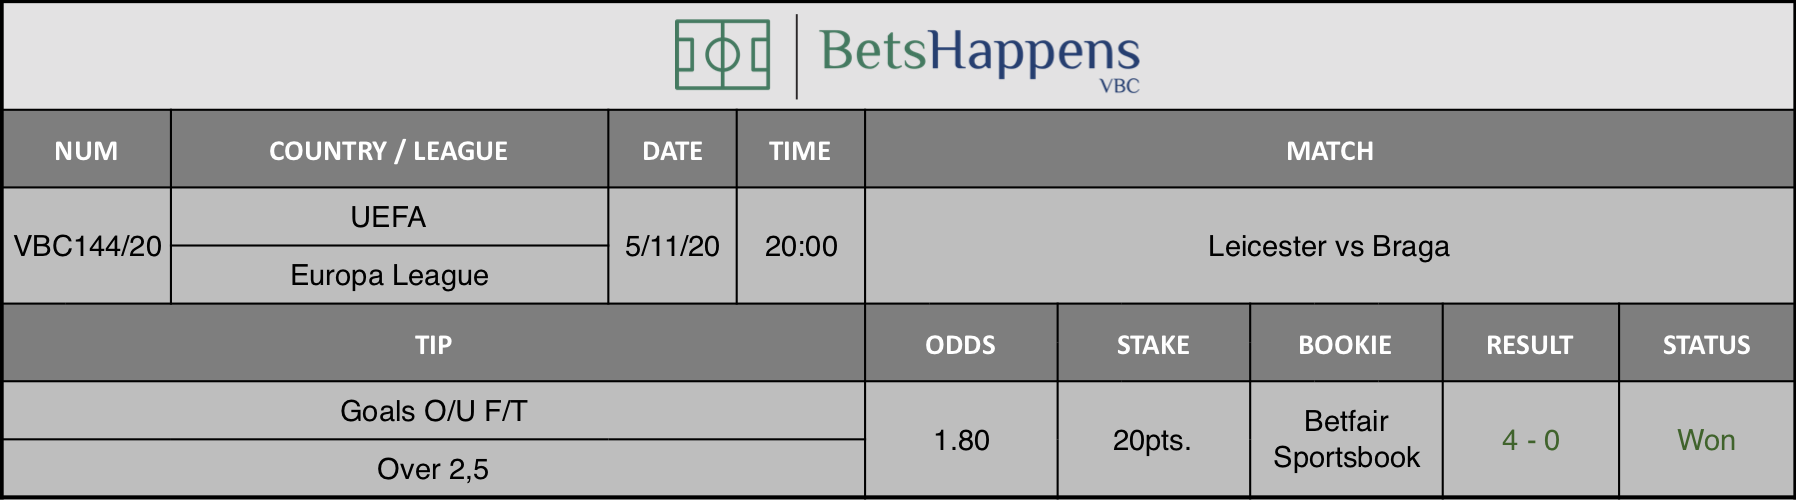 Results of our tip for the Leicester vs Braga match where Goals O/U F/T Over 2,5 is recommended.